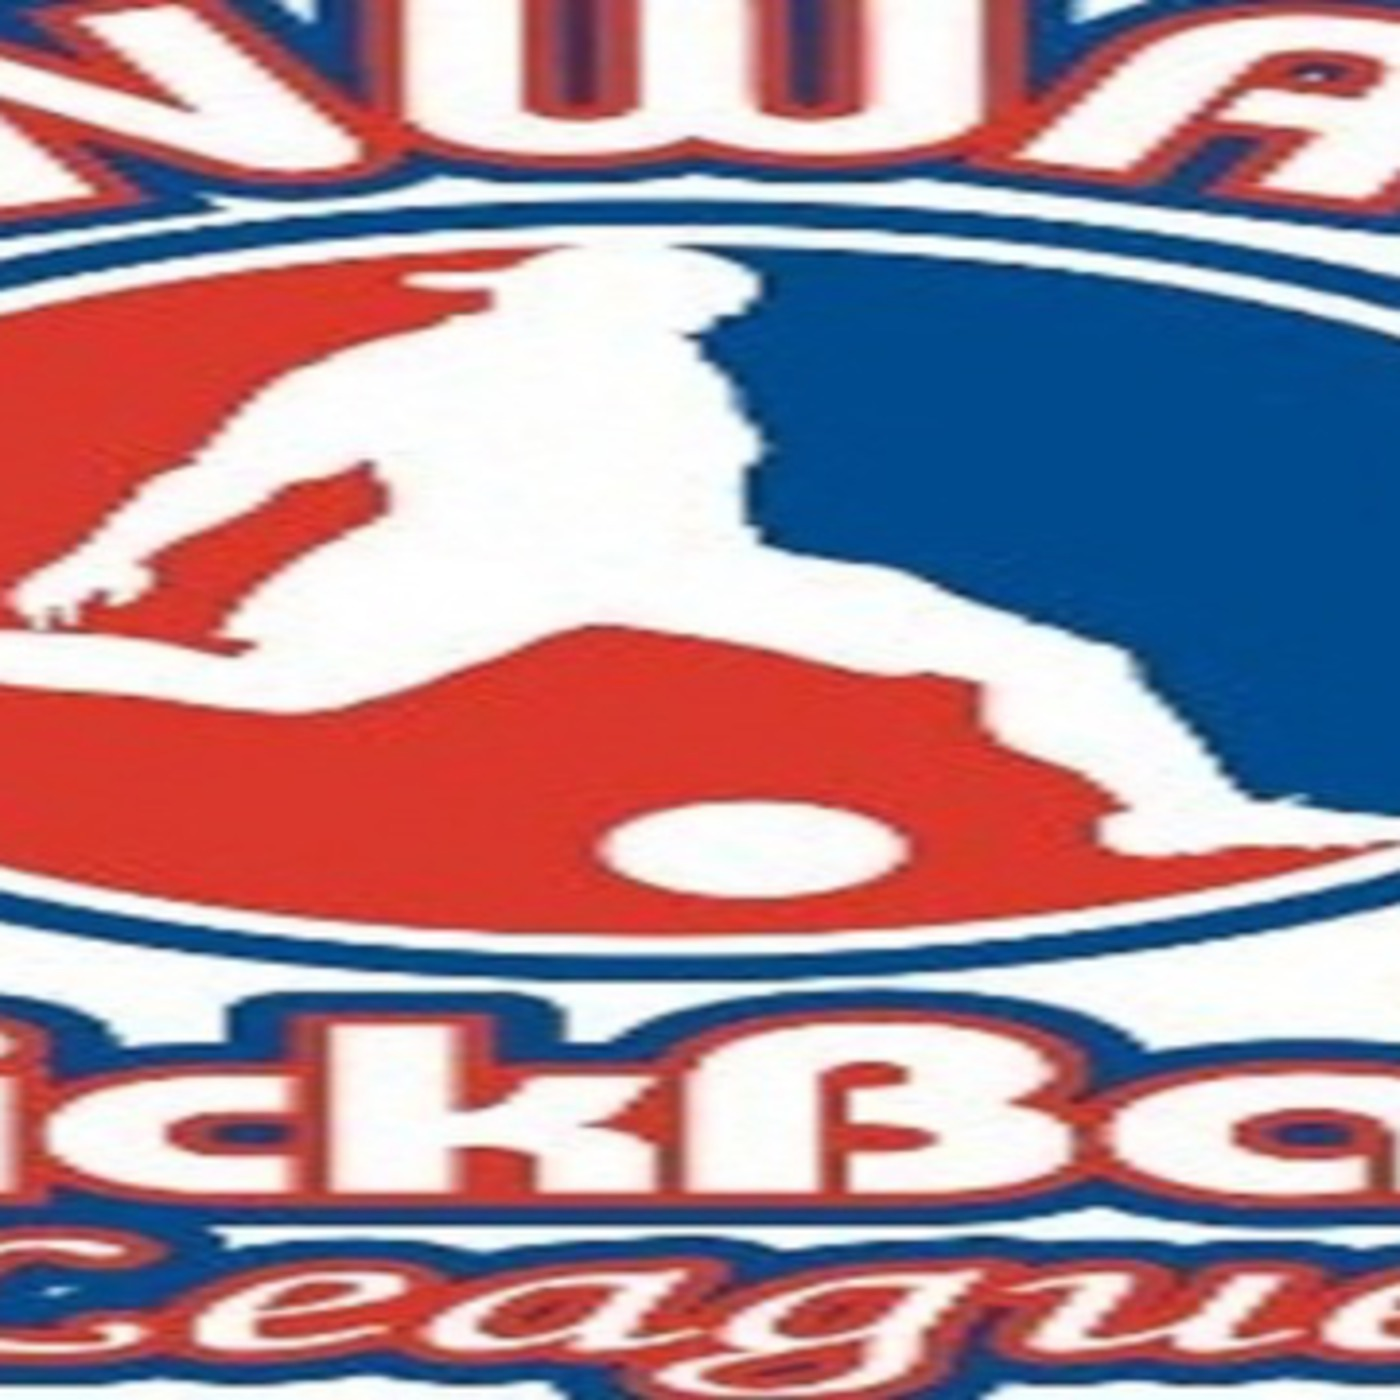 NWA KICKBALL LEAGUE's Podcast